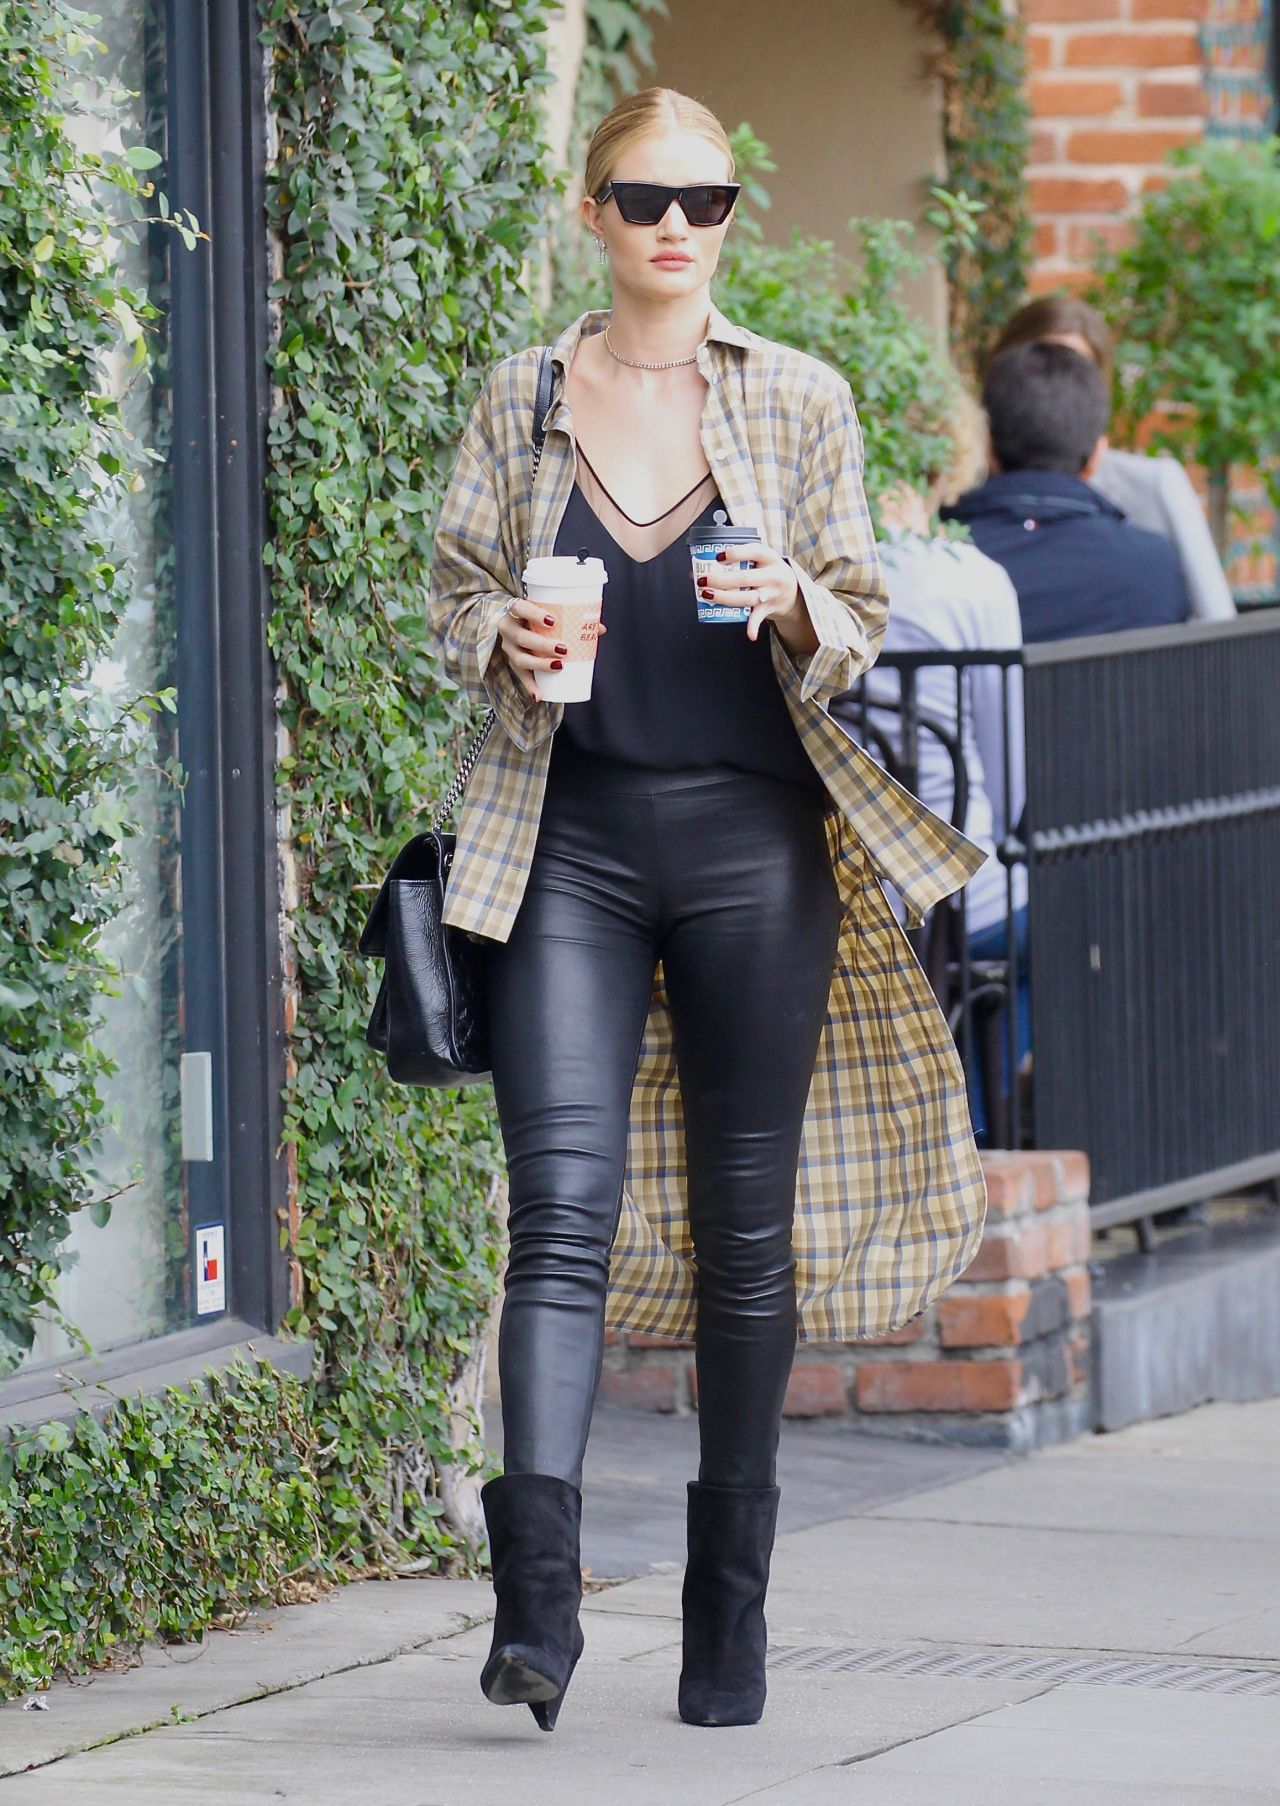 Rosie Huntington Whiteley Street Fashion On A Coffee Run